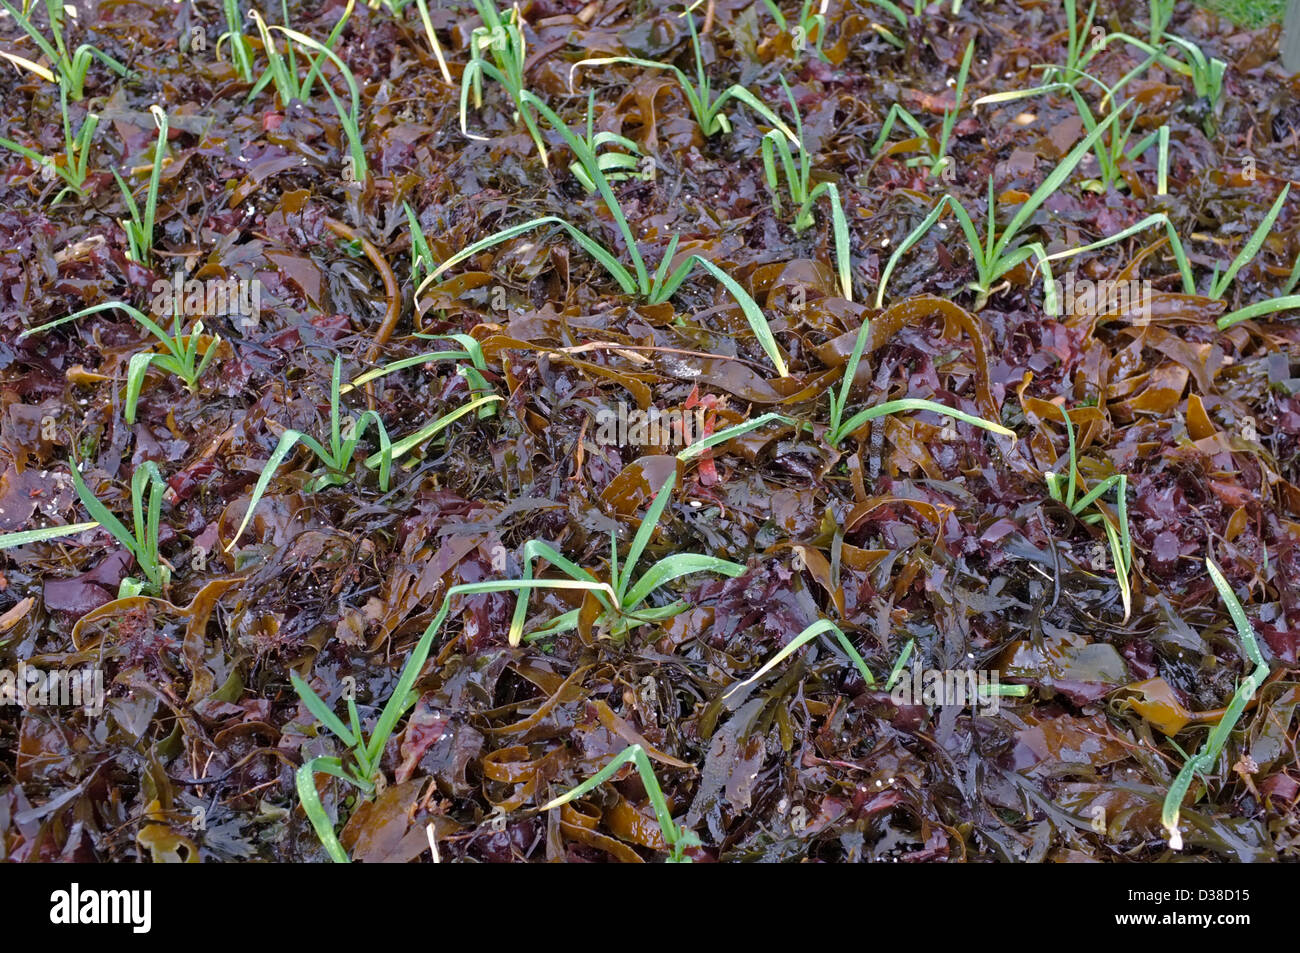 Autumn sown Garlic with a mulch of seaweed Stock Photo